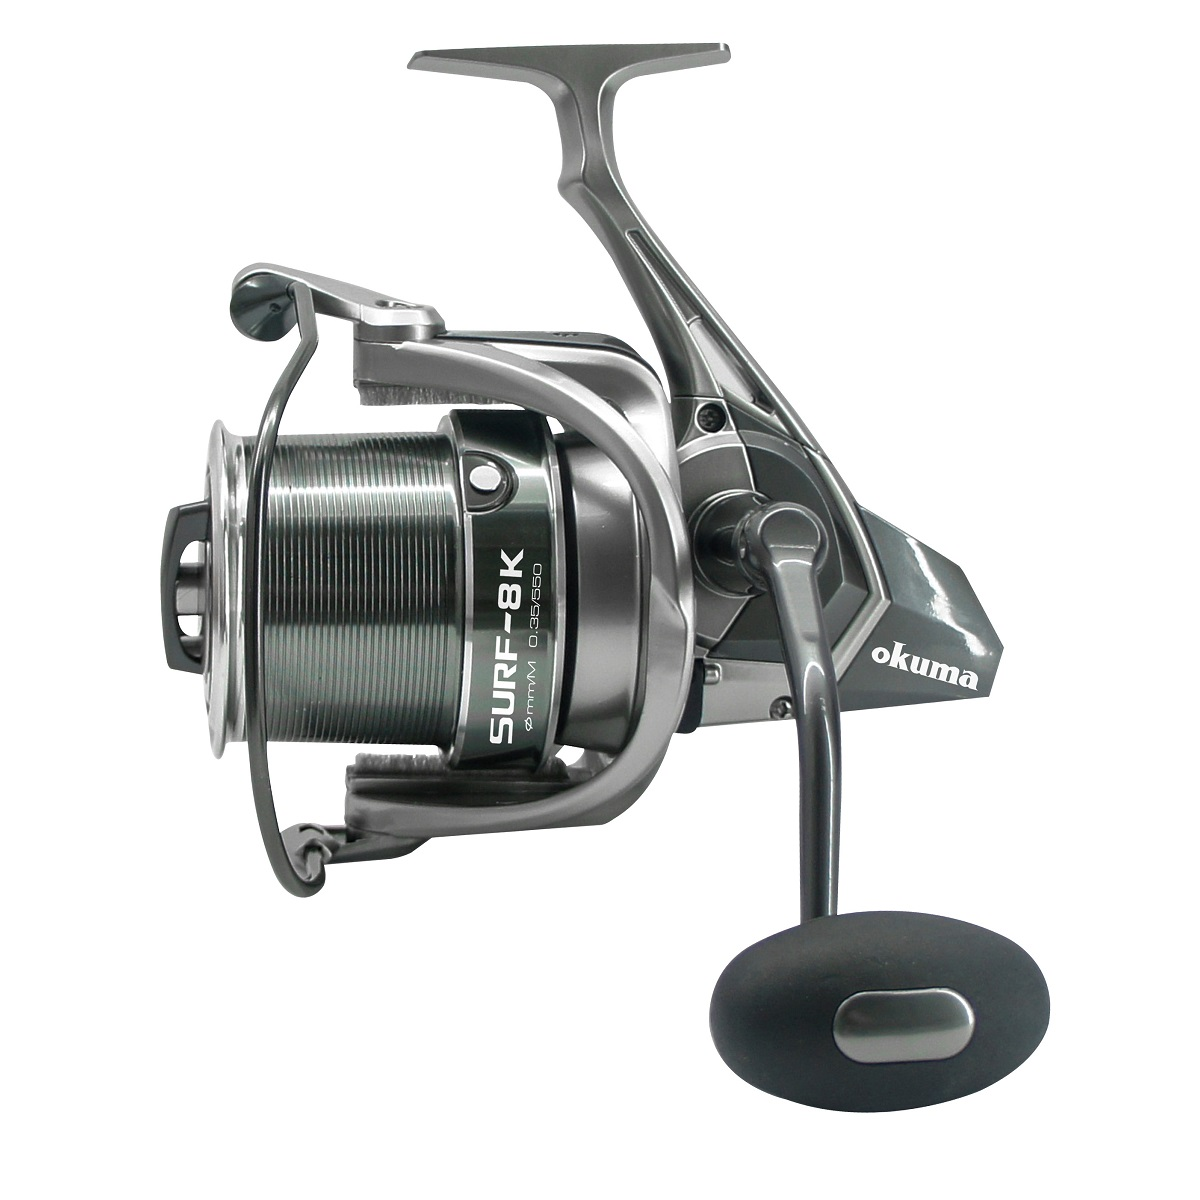 Surf 8k spinning reel 2018 new okuma fishing rods and for Surf fishing reels